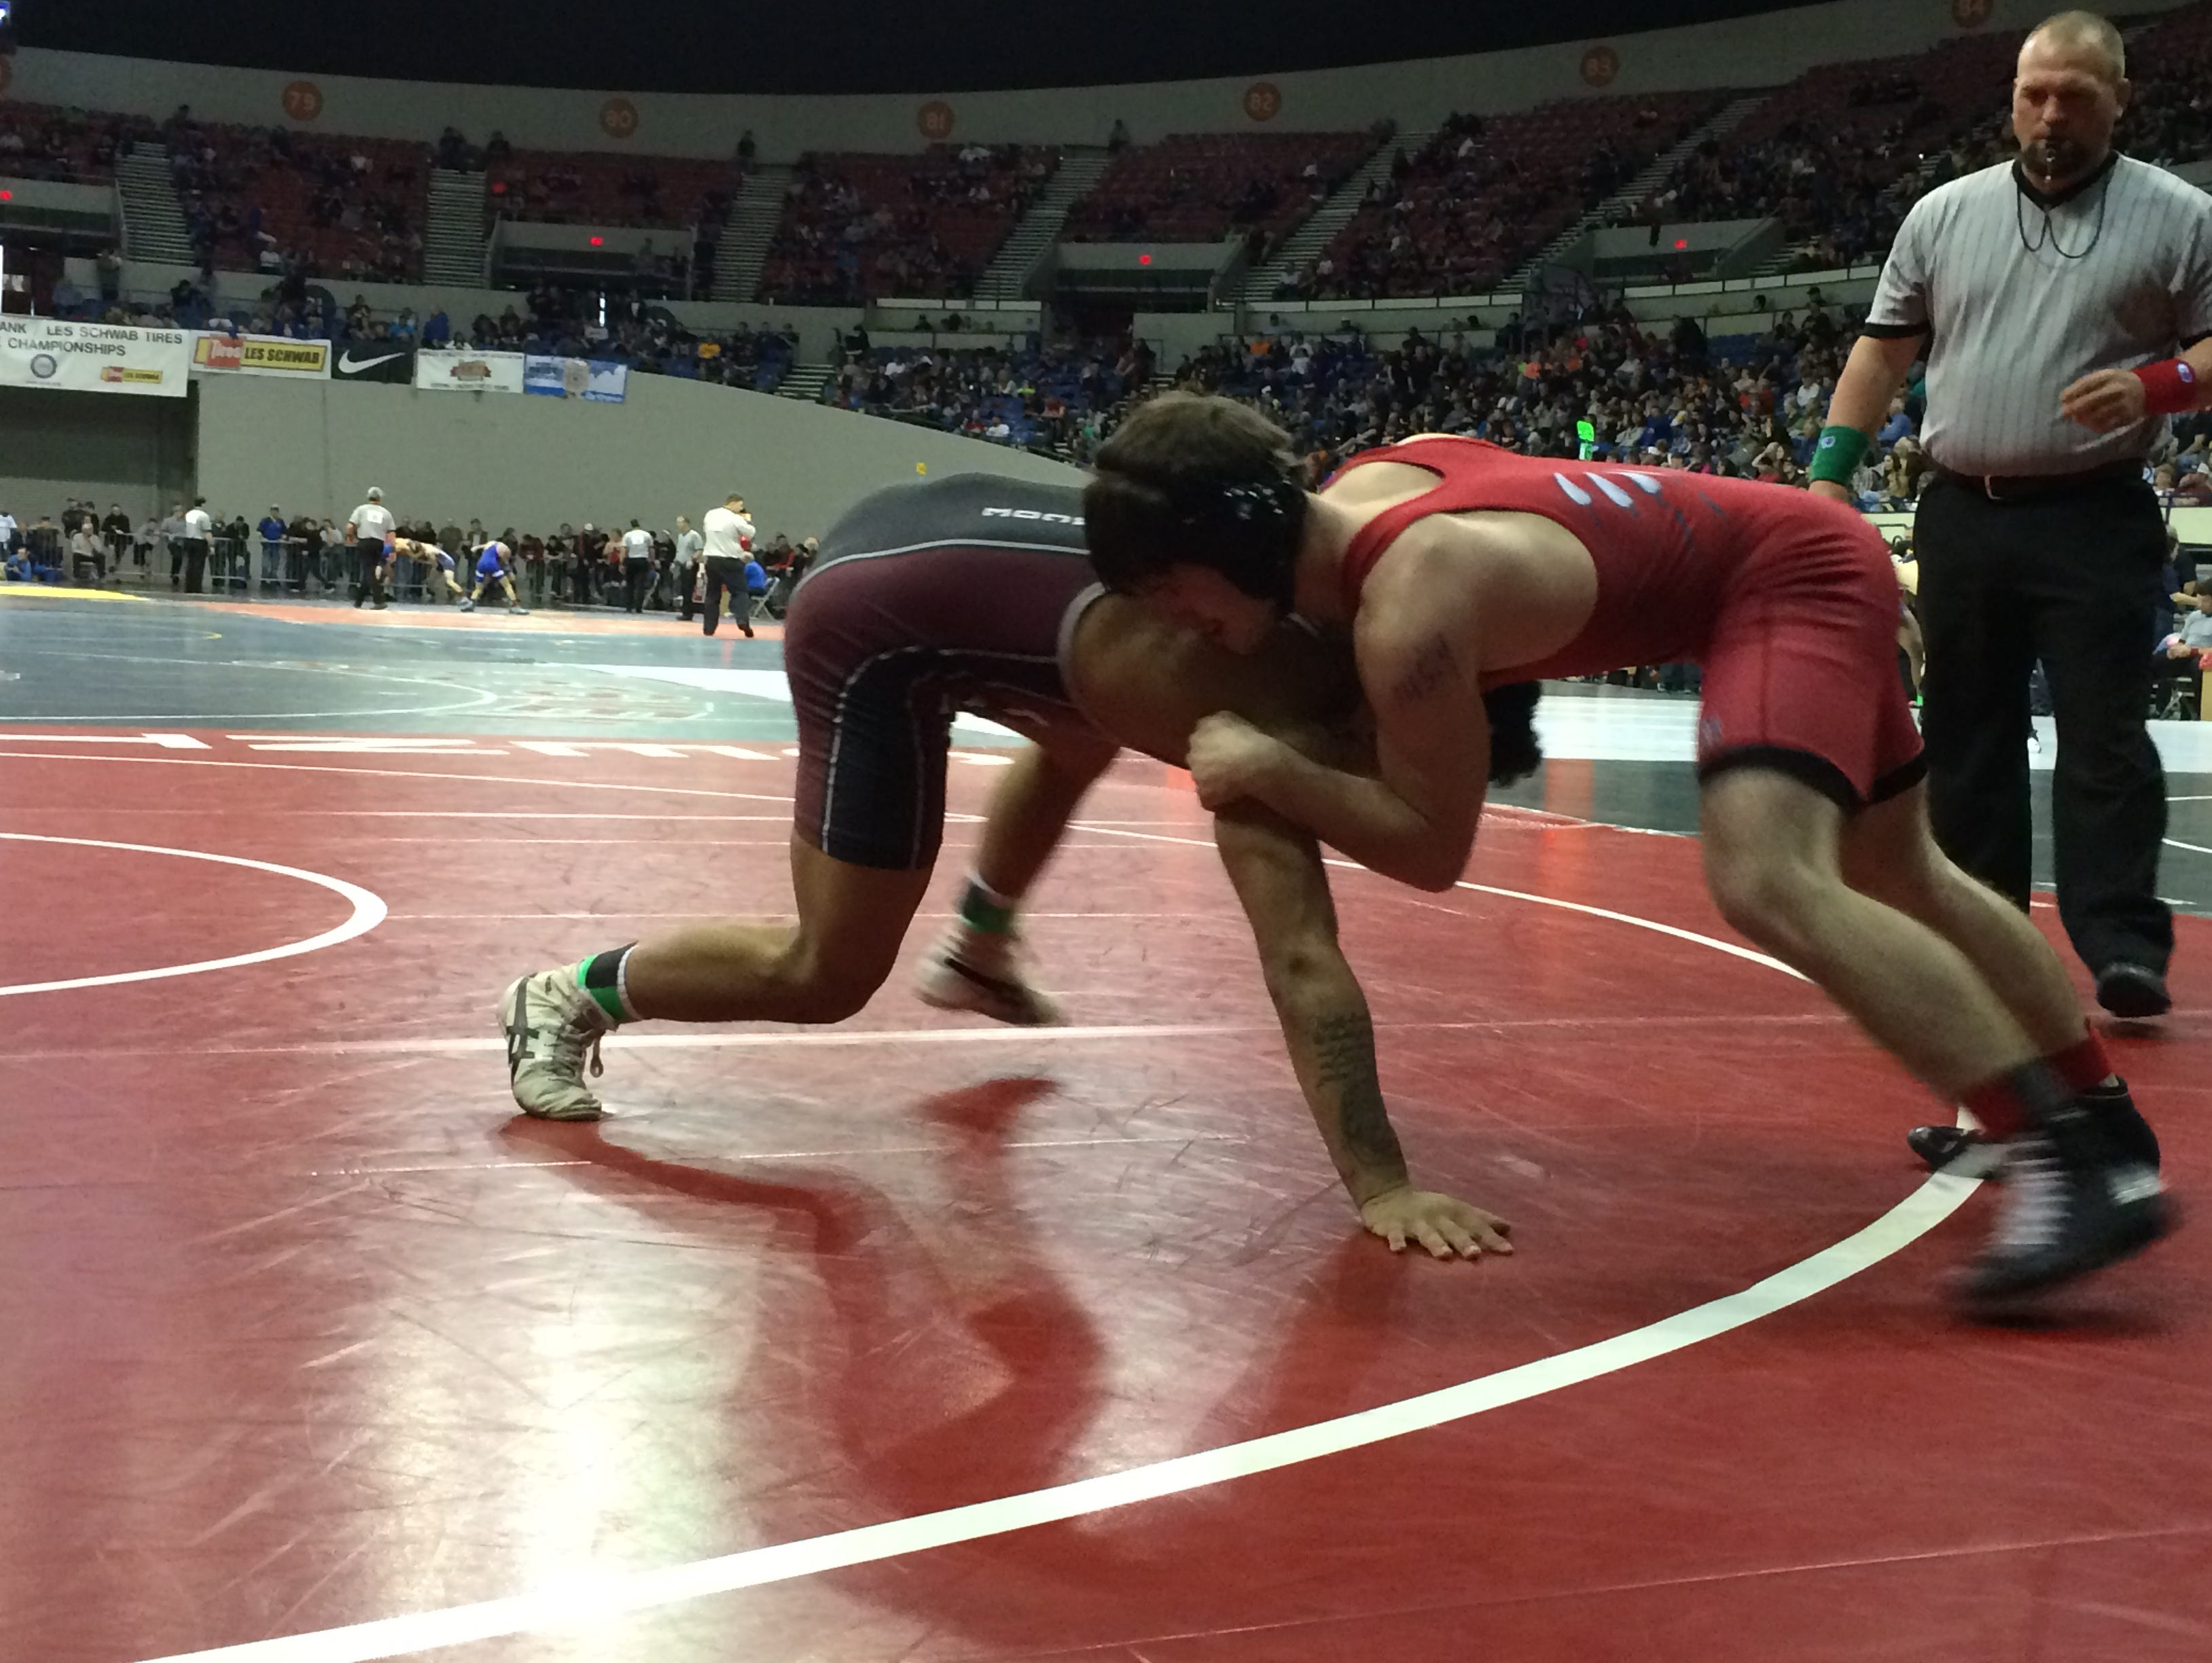 Glencoe's Anthony Lambert tries to stay up against McMinnville's Bobby Crowston.